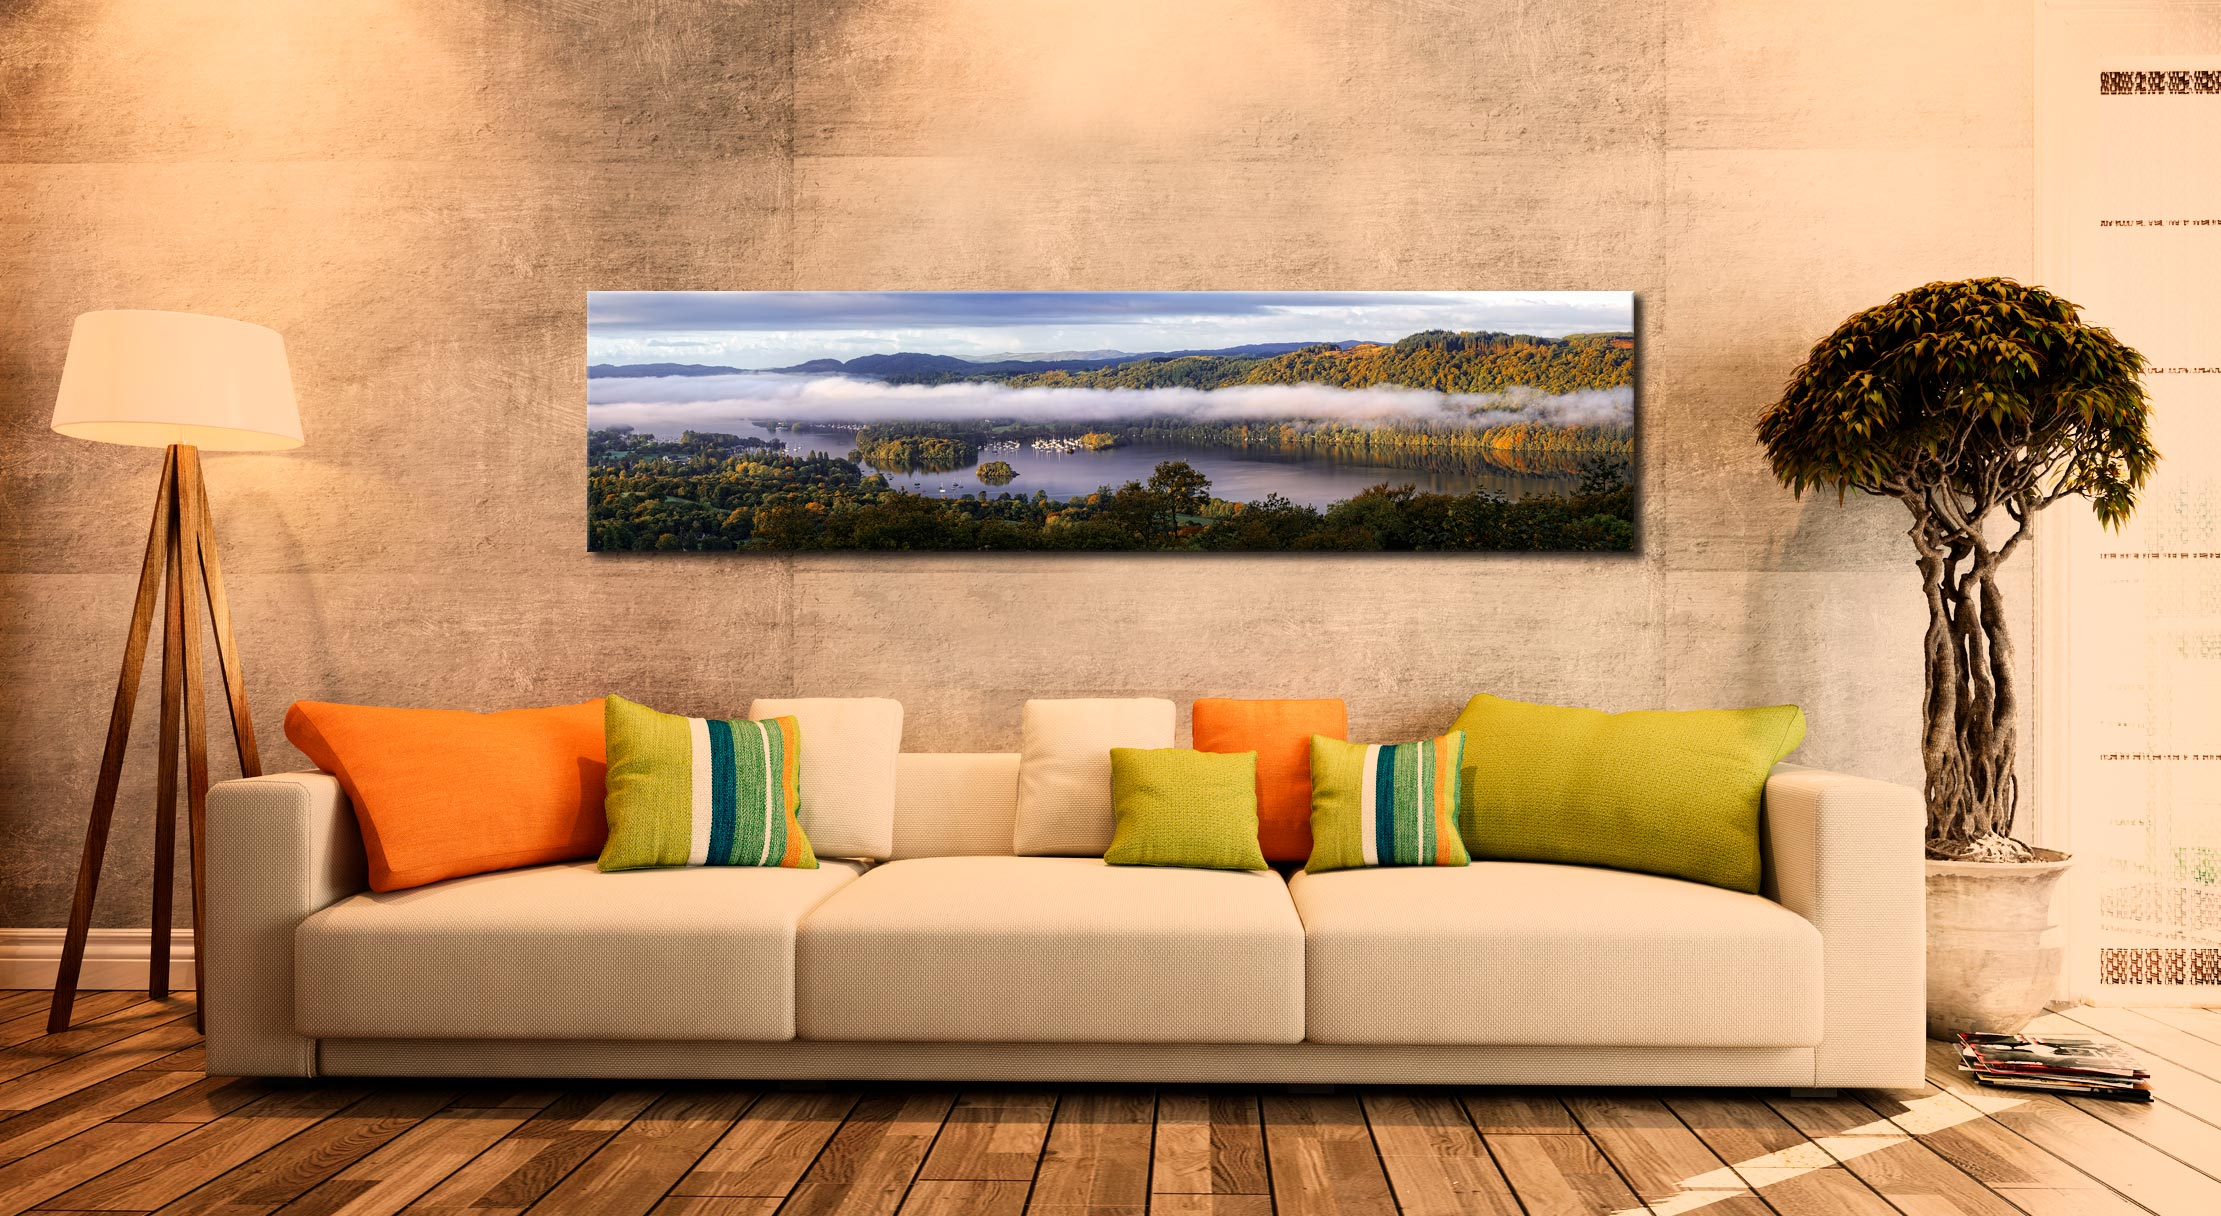 Bowness On Windermere Morning Mists - Print Aluminium Backing With Acrylic Glazing on Wall